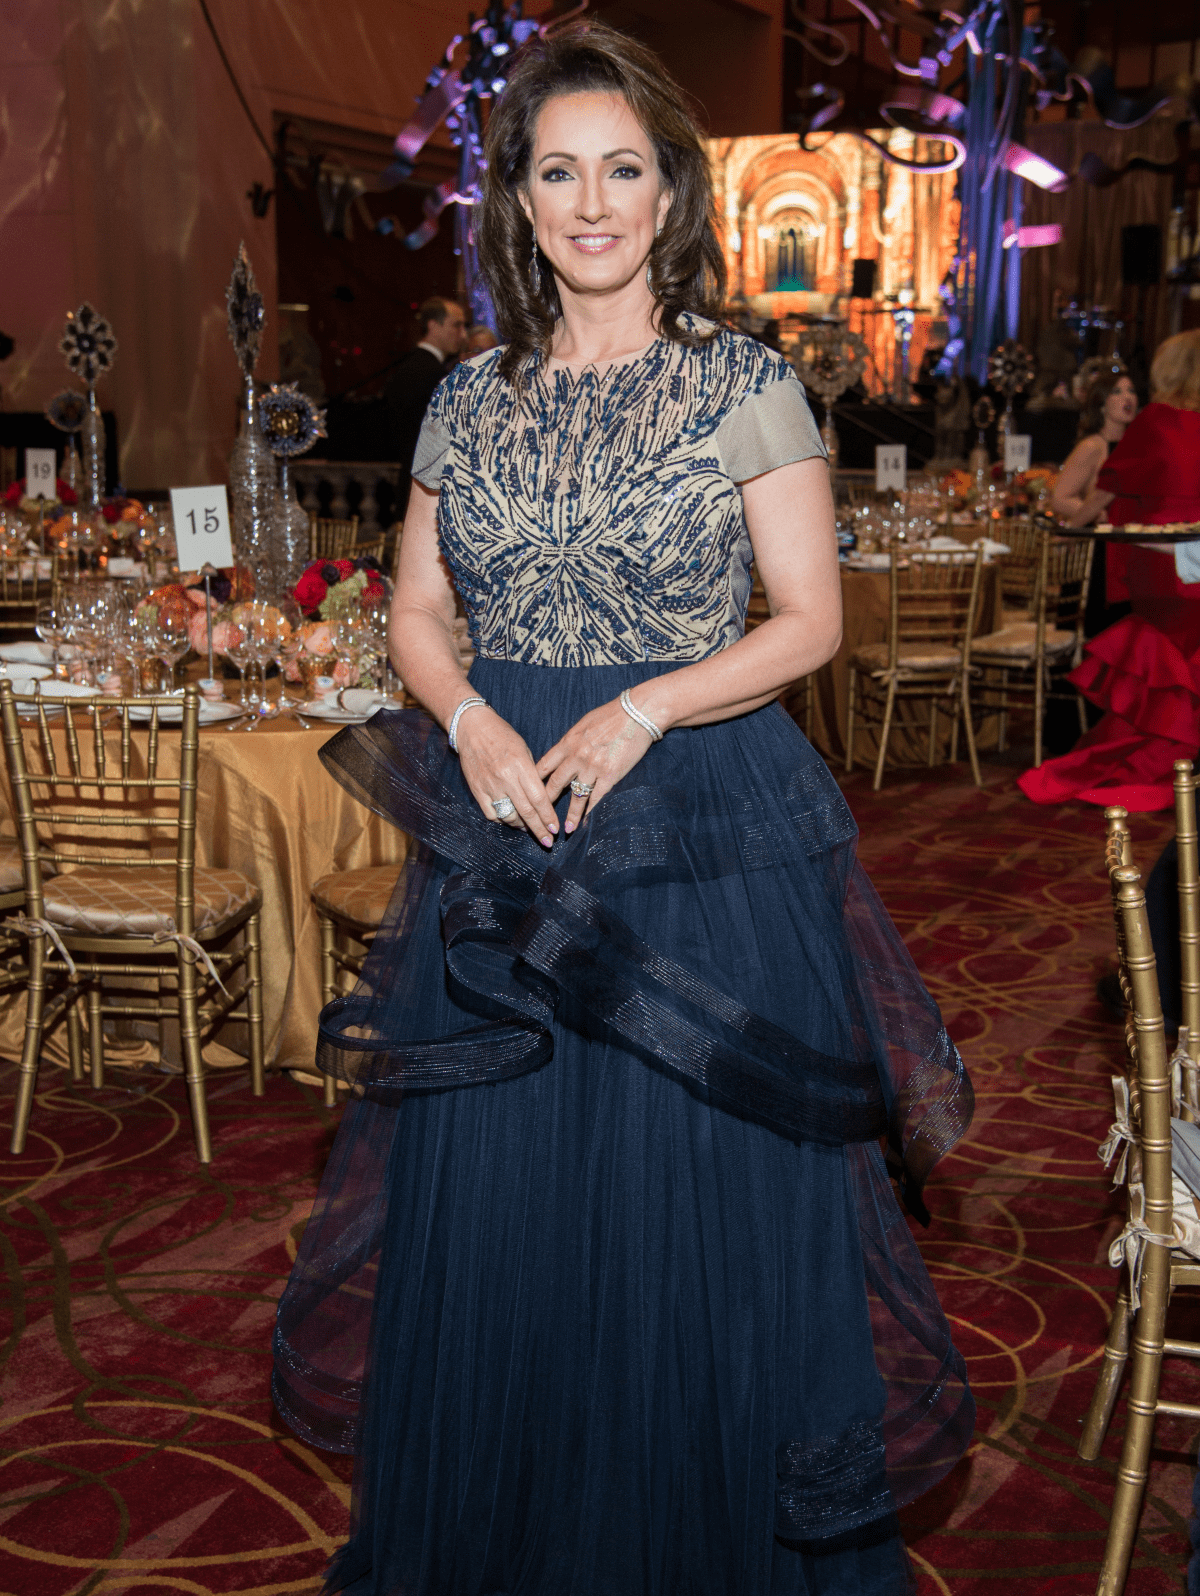 Houston, Ballet Ball gowns, Feb 2017, Alicia McGuire Smith in Monique Lhuillier